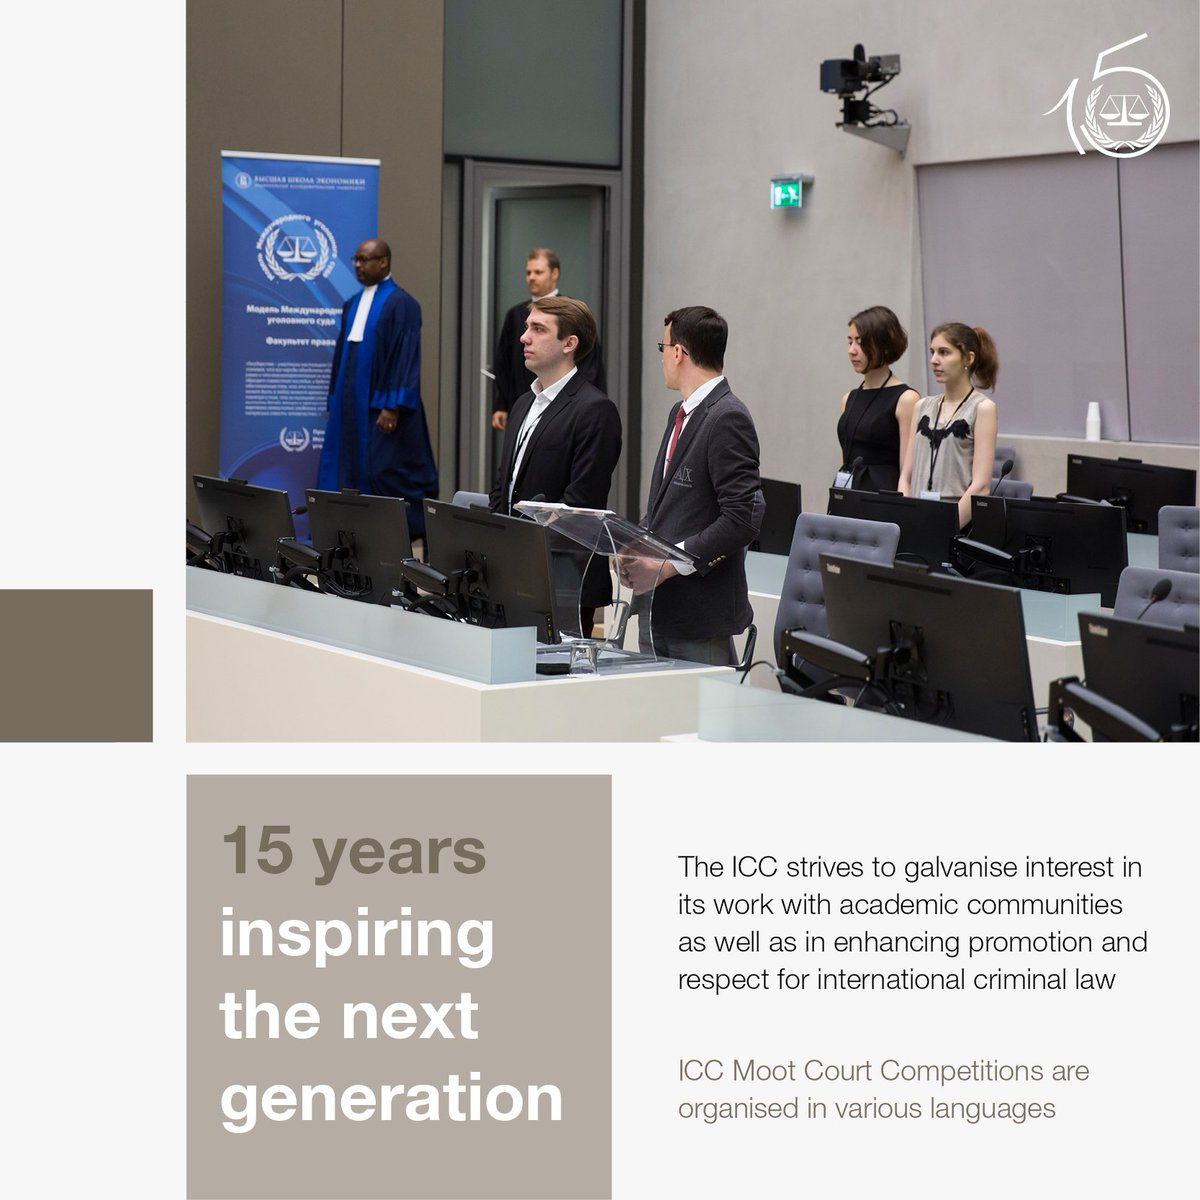 Countdown to 1 July: Join us in celebrating #ICC's 15th anniversary - #justicematters #wheniwas15  https://www. facebook.com/InternationalC riminalCourt.ICC/ &nbsp; … <br>http://pic.twitter.com/AExfSOJBfn